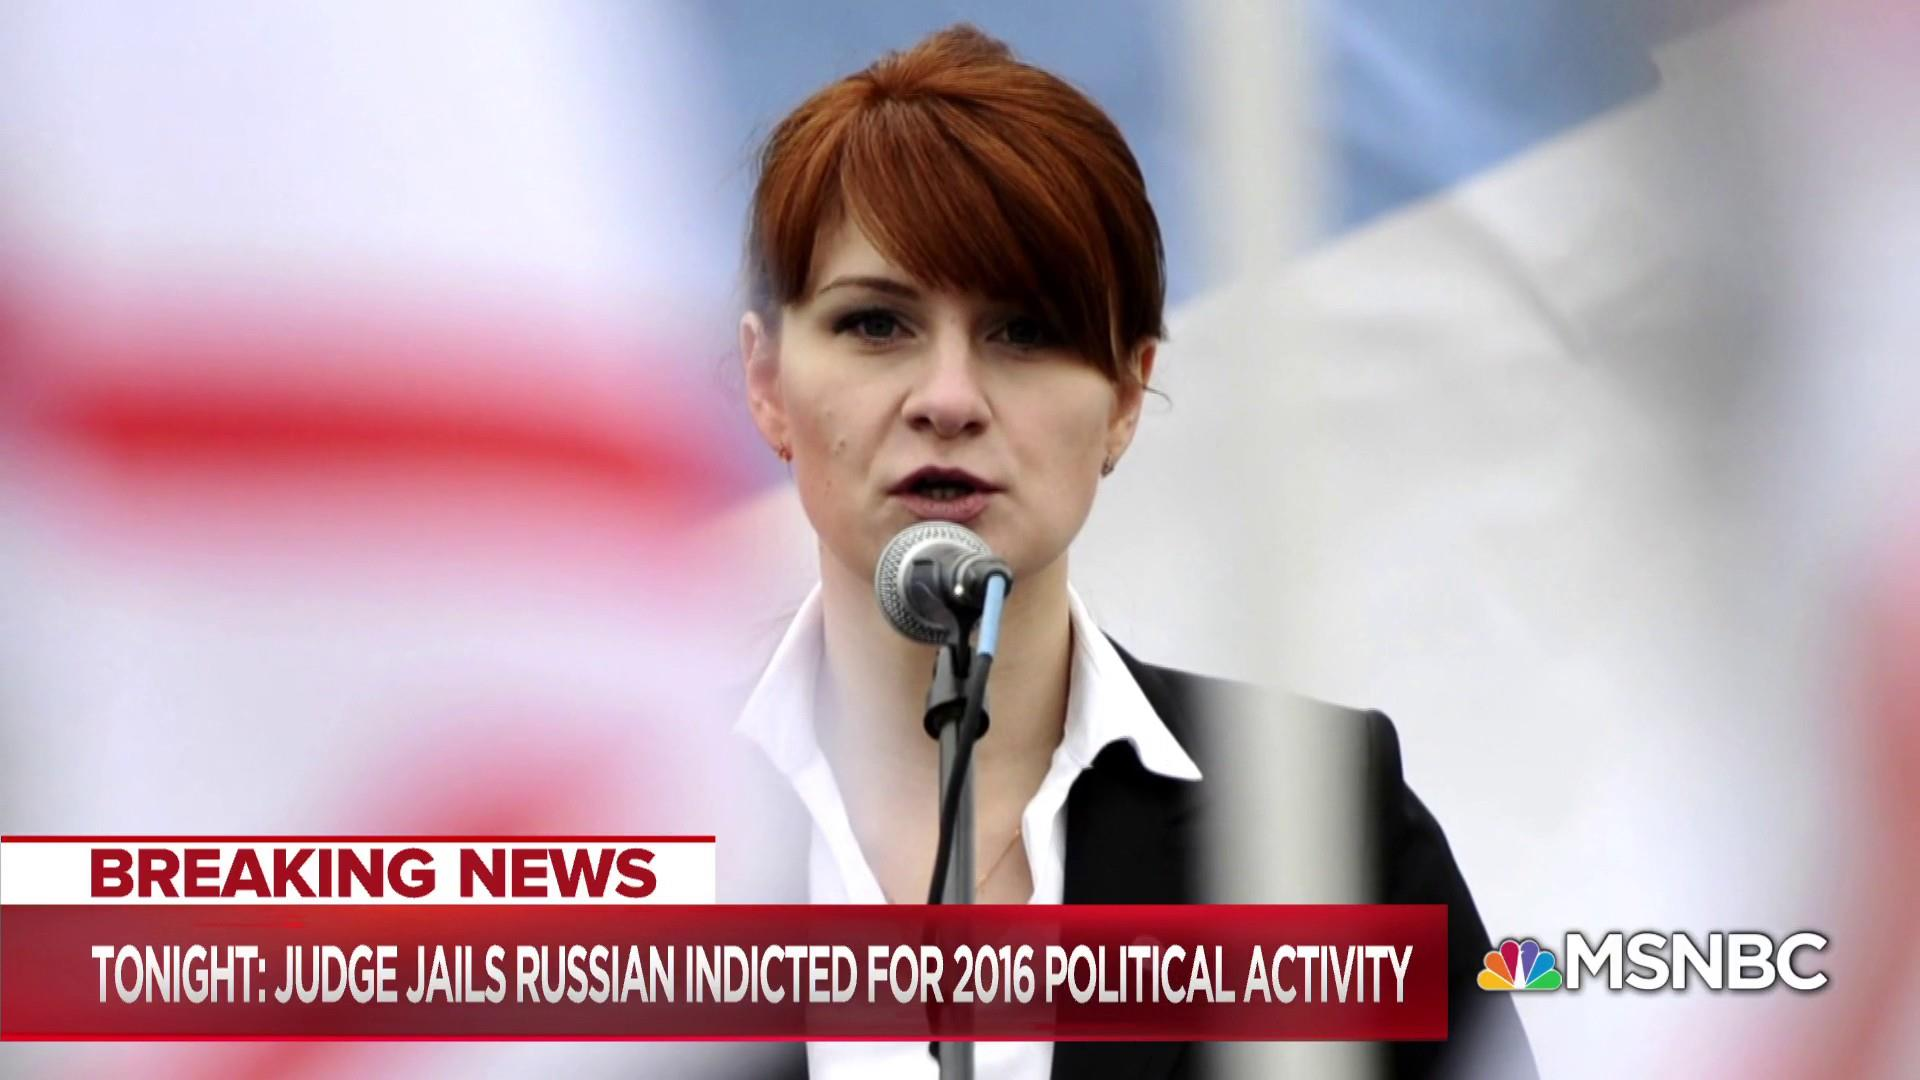 Alleged Russian agent jailed before trial